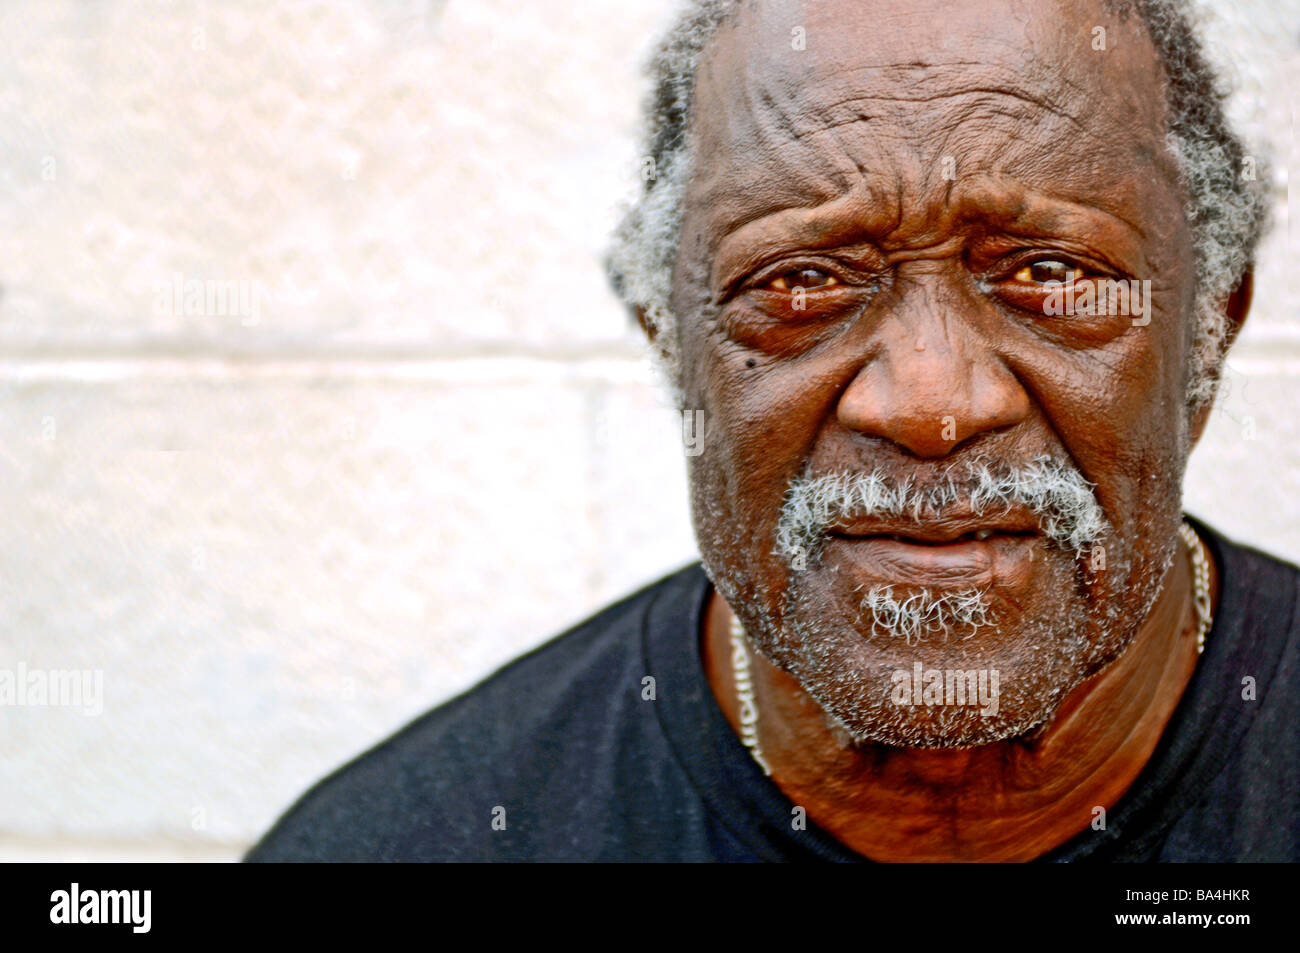 abuse in elderly african americans Civil justice system uncovers abuse and neglect of elderly americans new aaj report shows how litigation holds nursing homes, insurance companies accountable when they target nation's seniors washington, dc.